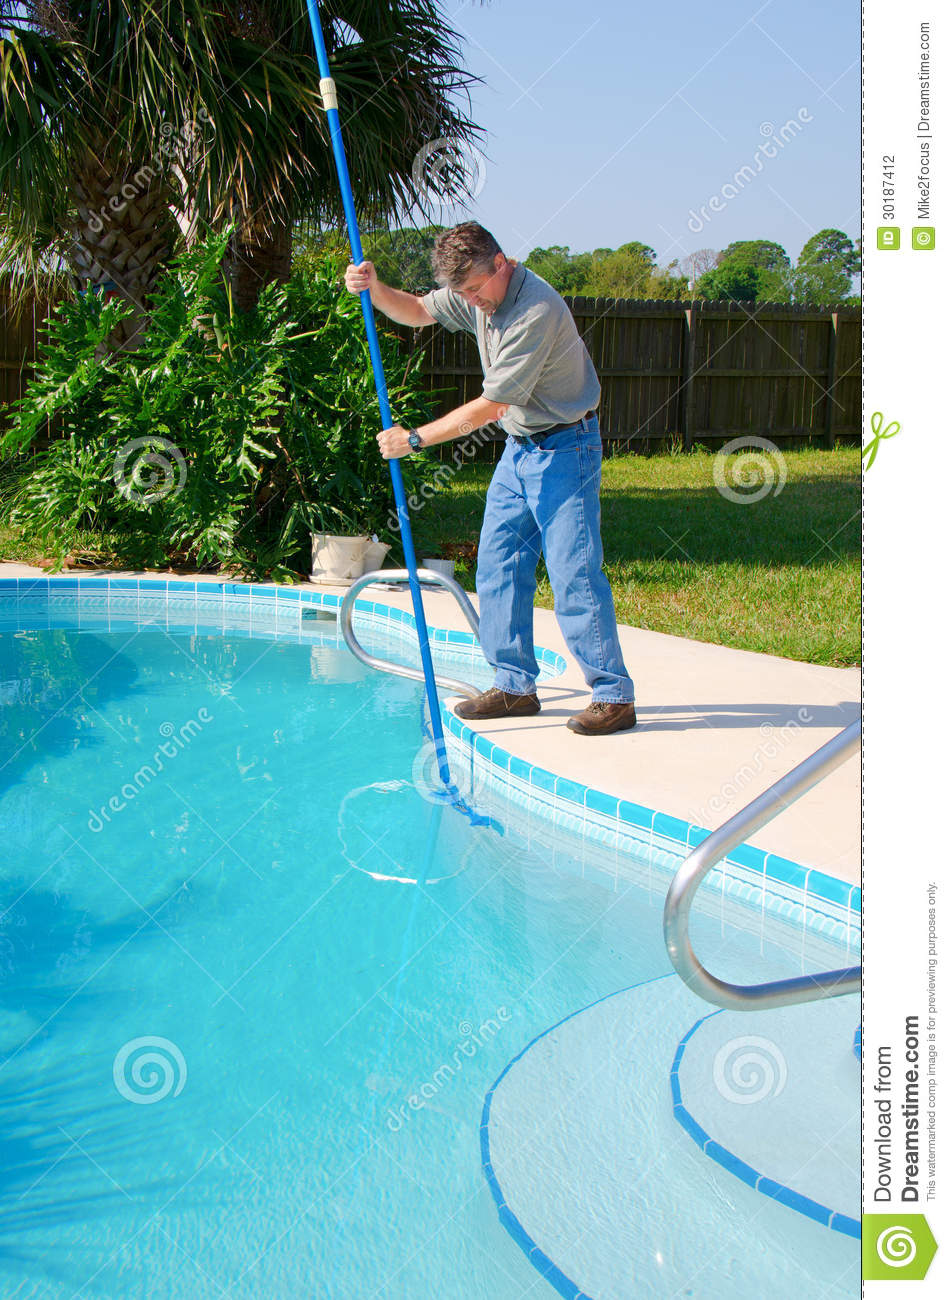 Residential Pool Cleaning Service Man Working Stock Photography Image 30187412